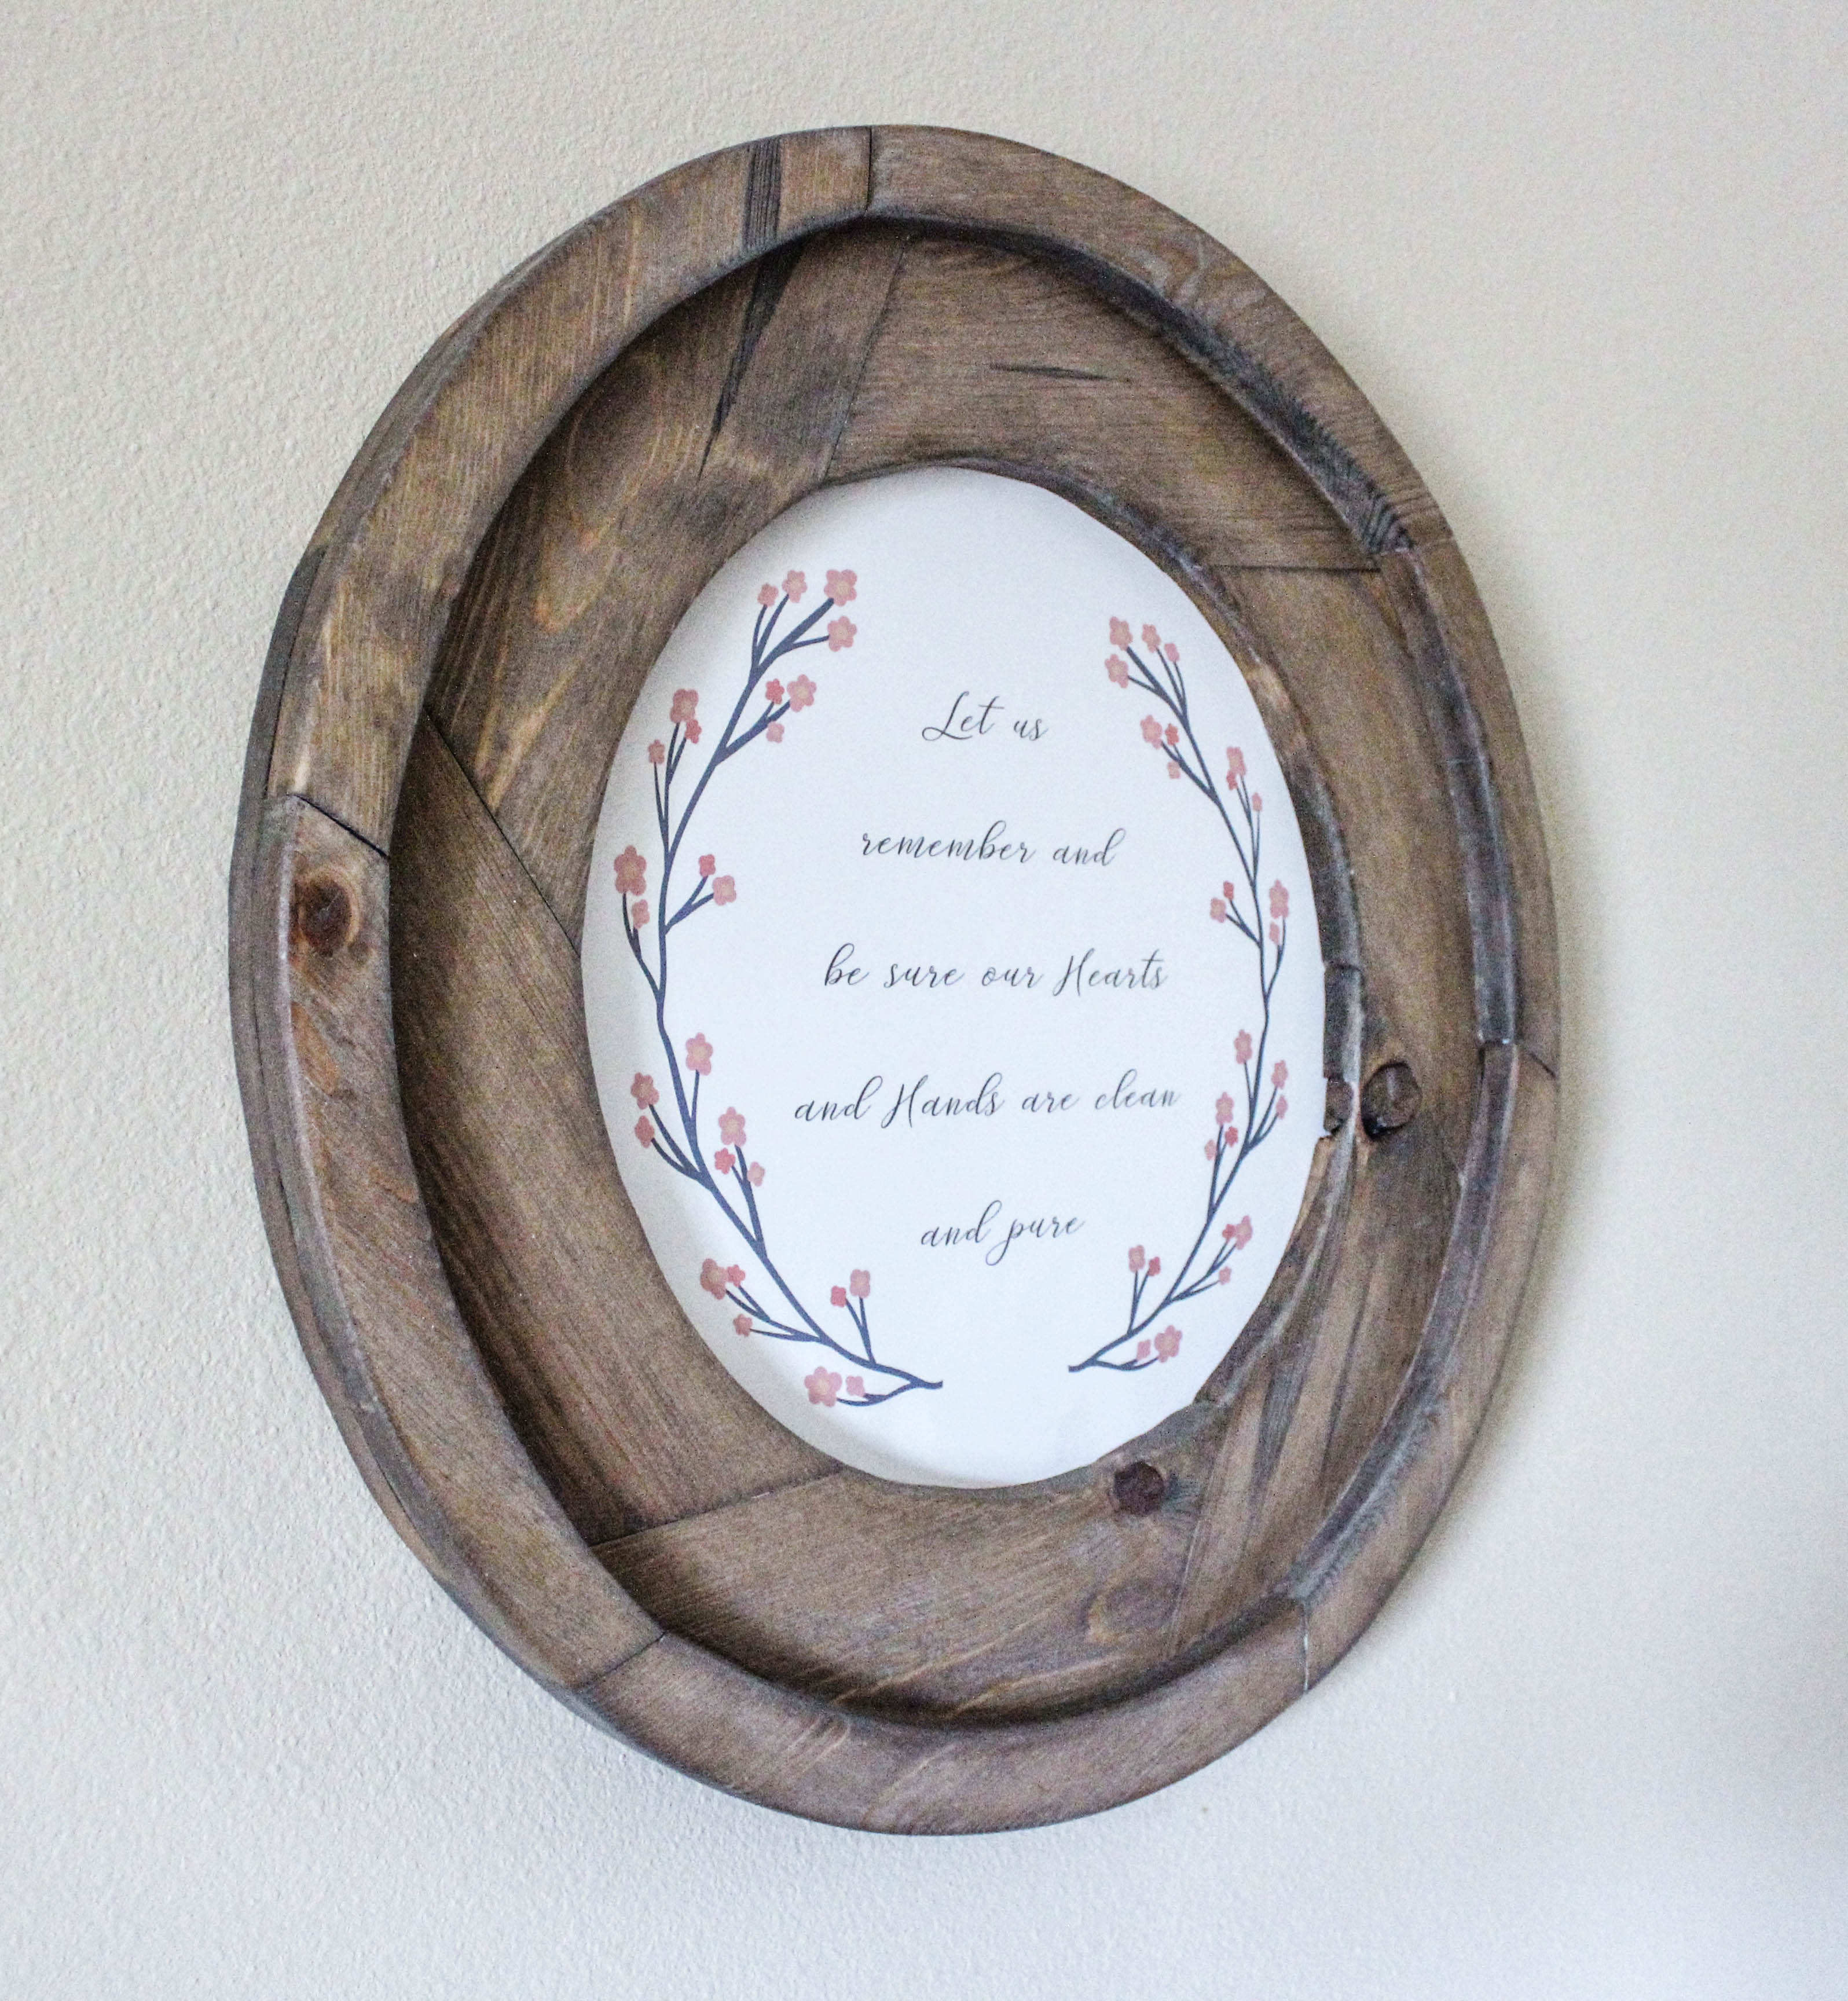 Easy diy round picture frame or mirror made from wood for How to make a round frame for mirror